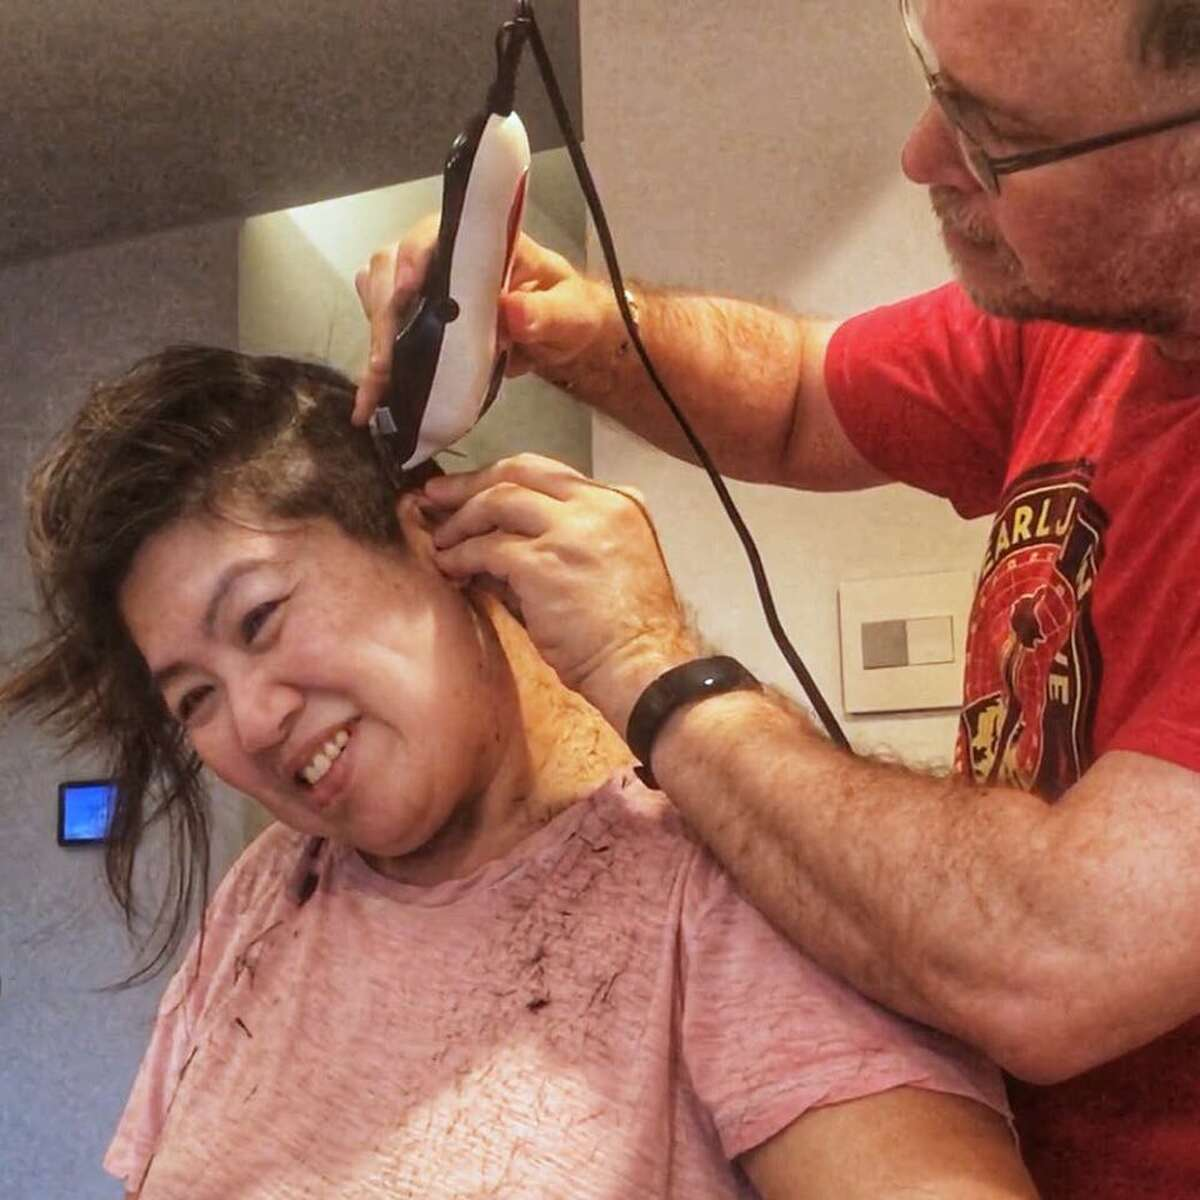 Eric Riddle cuts his wife's hair, Hsiao-Ching Chou. She is the author of